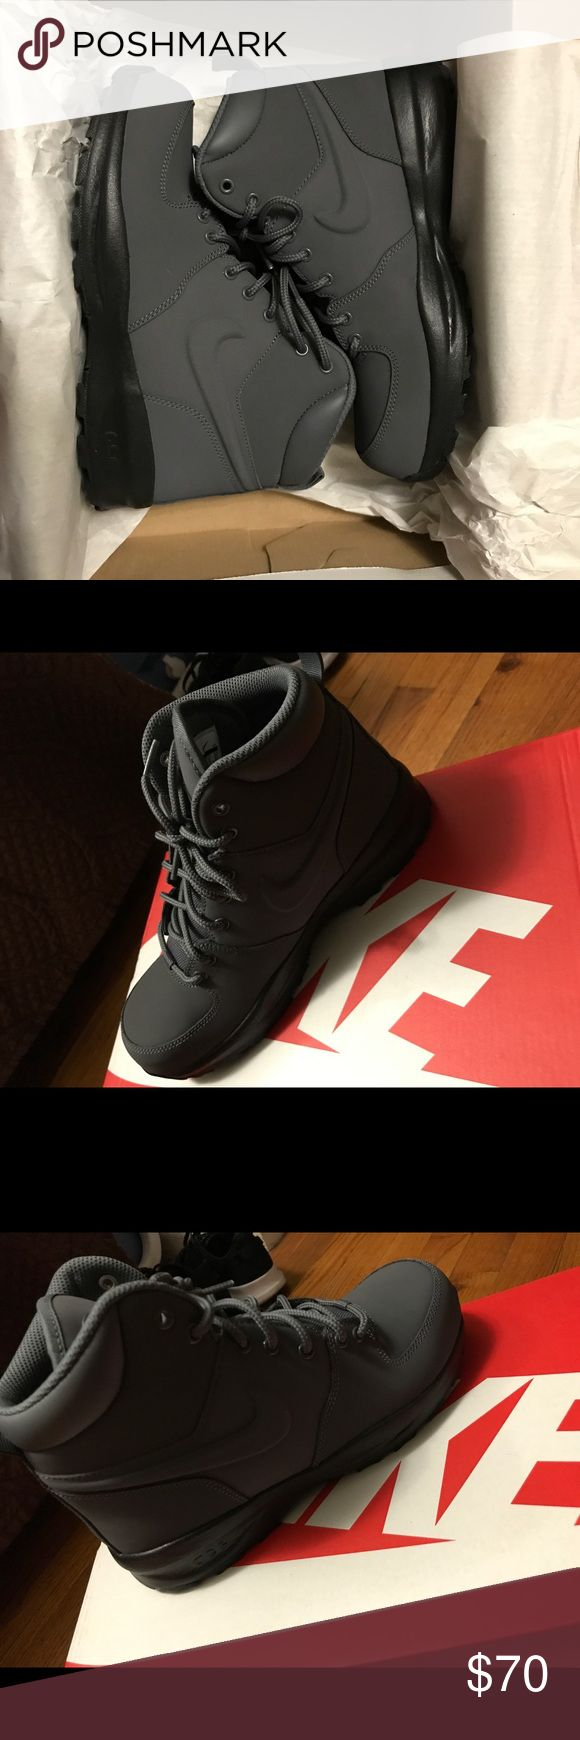 Nike acg boots Men size 7, great condition Brand new and comes with box if wanted Nike ACG Shoes Boots